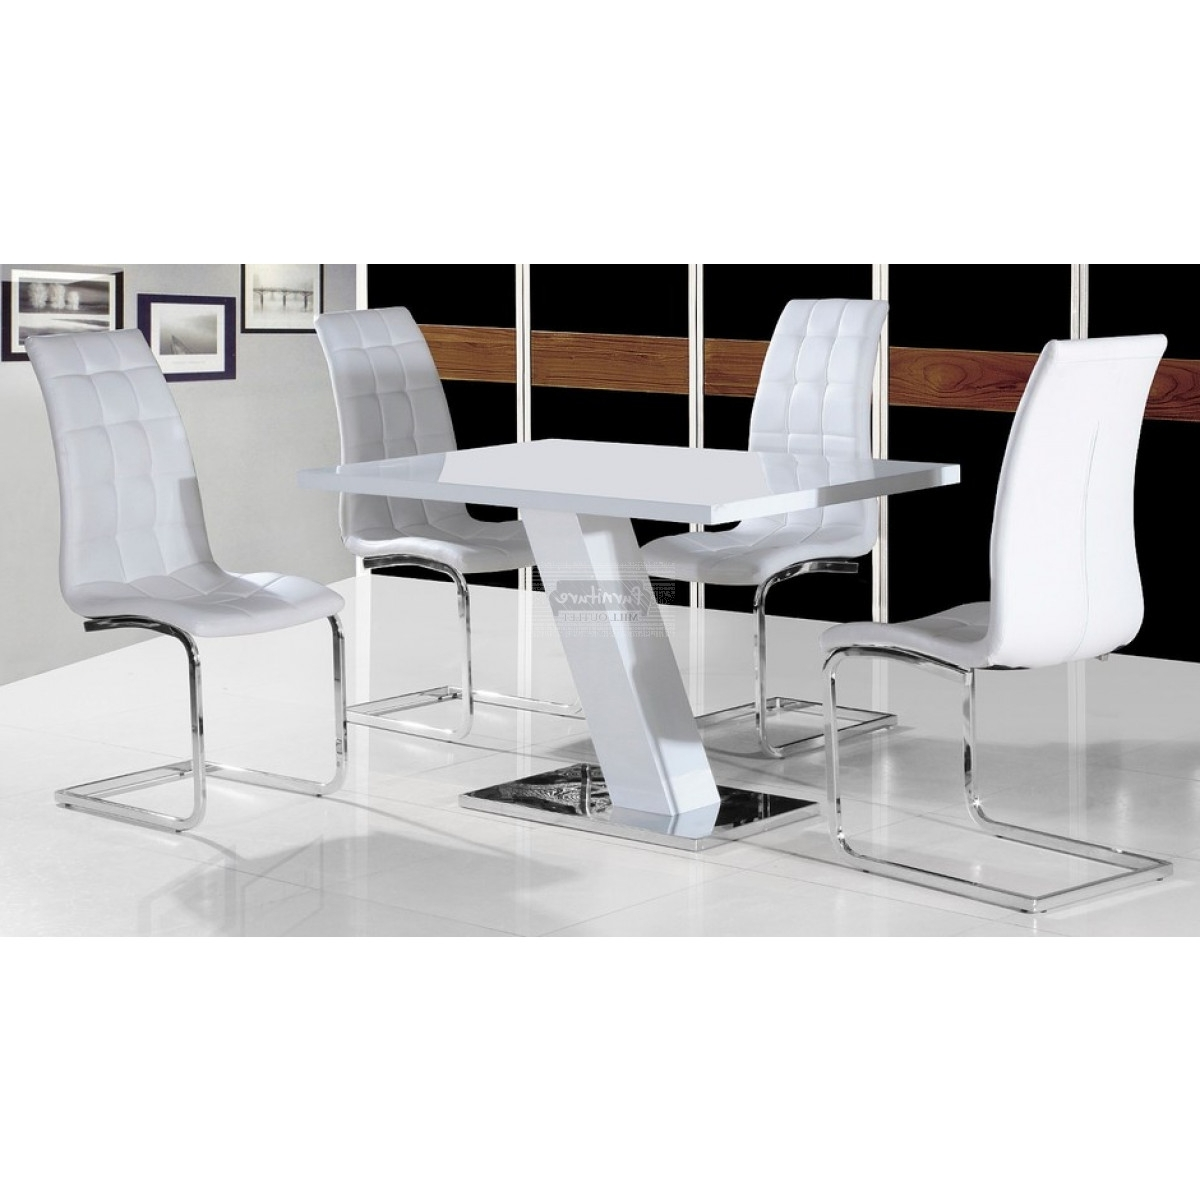 Gloss White Dining Tables And Chairs Throughout Well Known Aliyah High Gloss Dining Table In White – Furniture Mill Outlet (View 23 of 25)